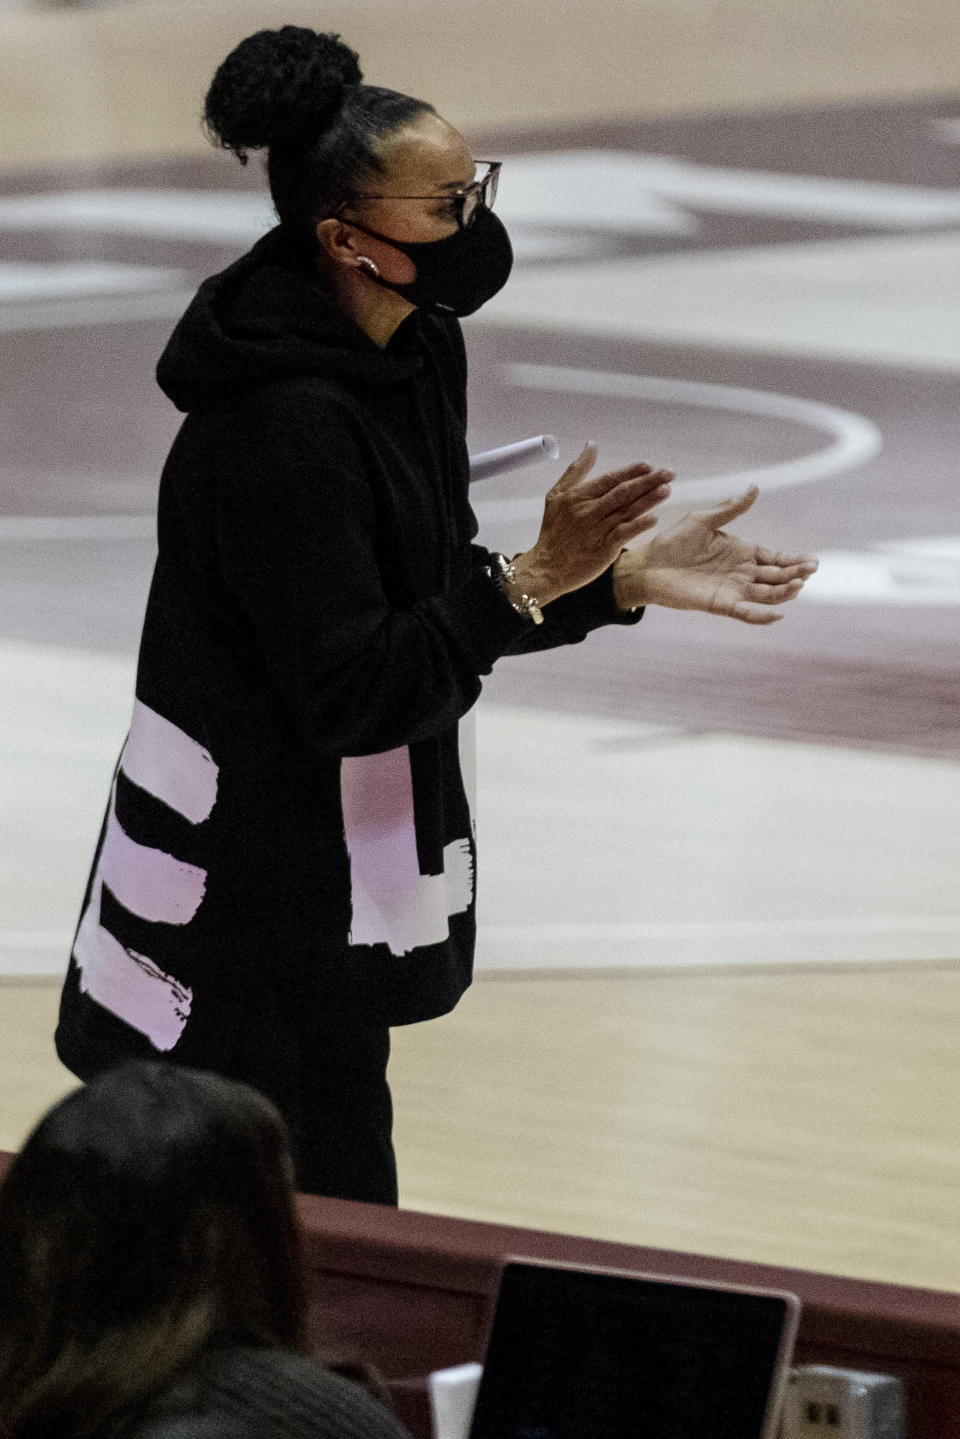 South Carolina head coach Dawn Staley calls to her team during the first half of an NCAA college basketball game against Alabama, Monday, Jan. 4, 2021, in Tuscaloosa, Ala. (AP Photo/Vasha Hunt)